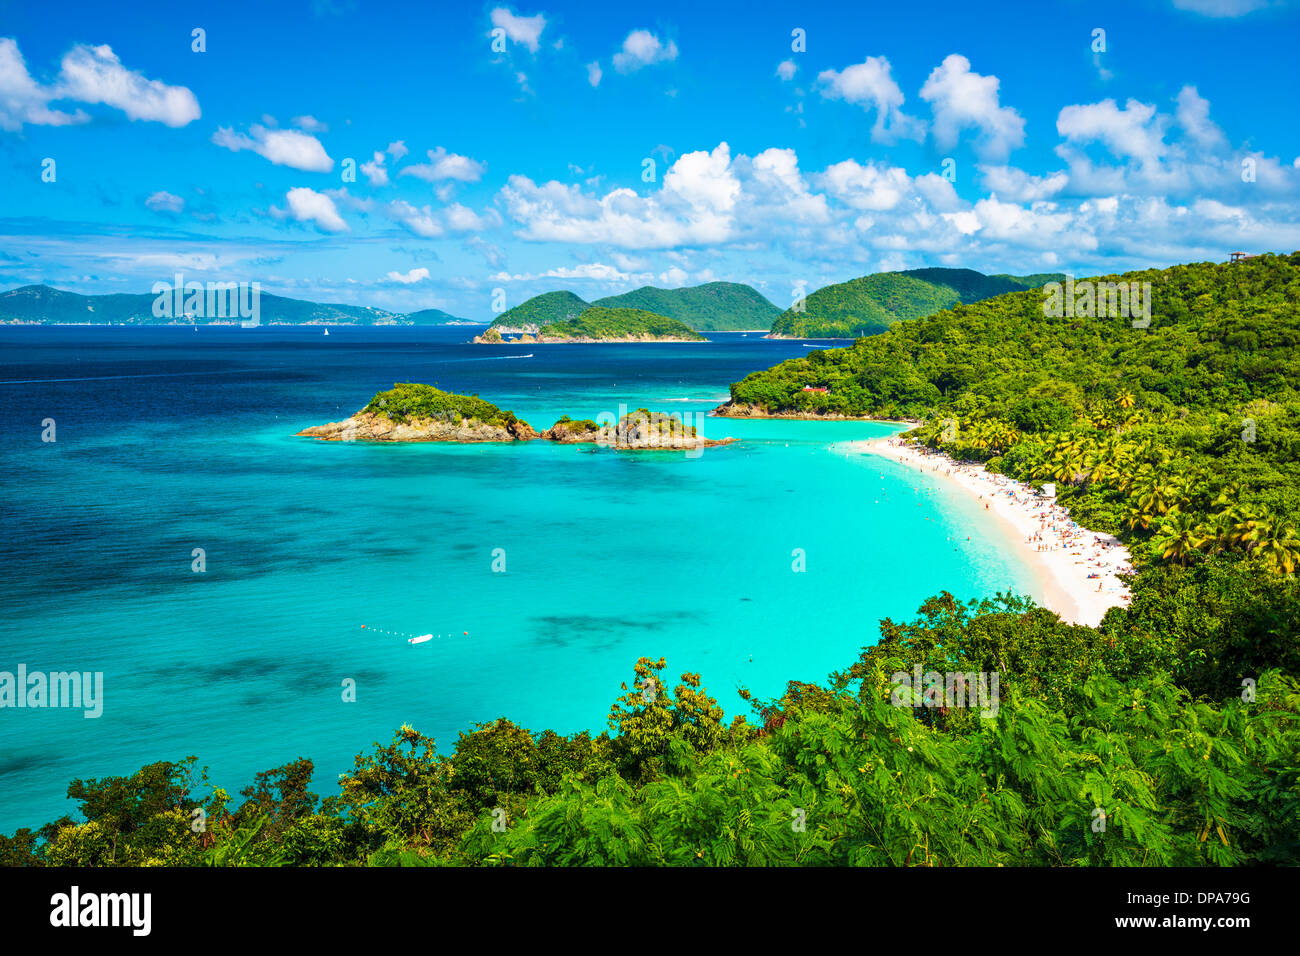 Trunk Bay, Saint John, îles Vierges américaines. Photo Stock